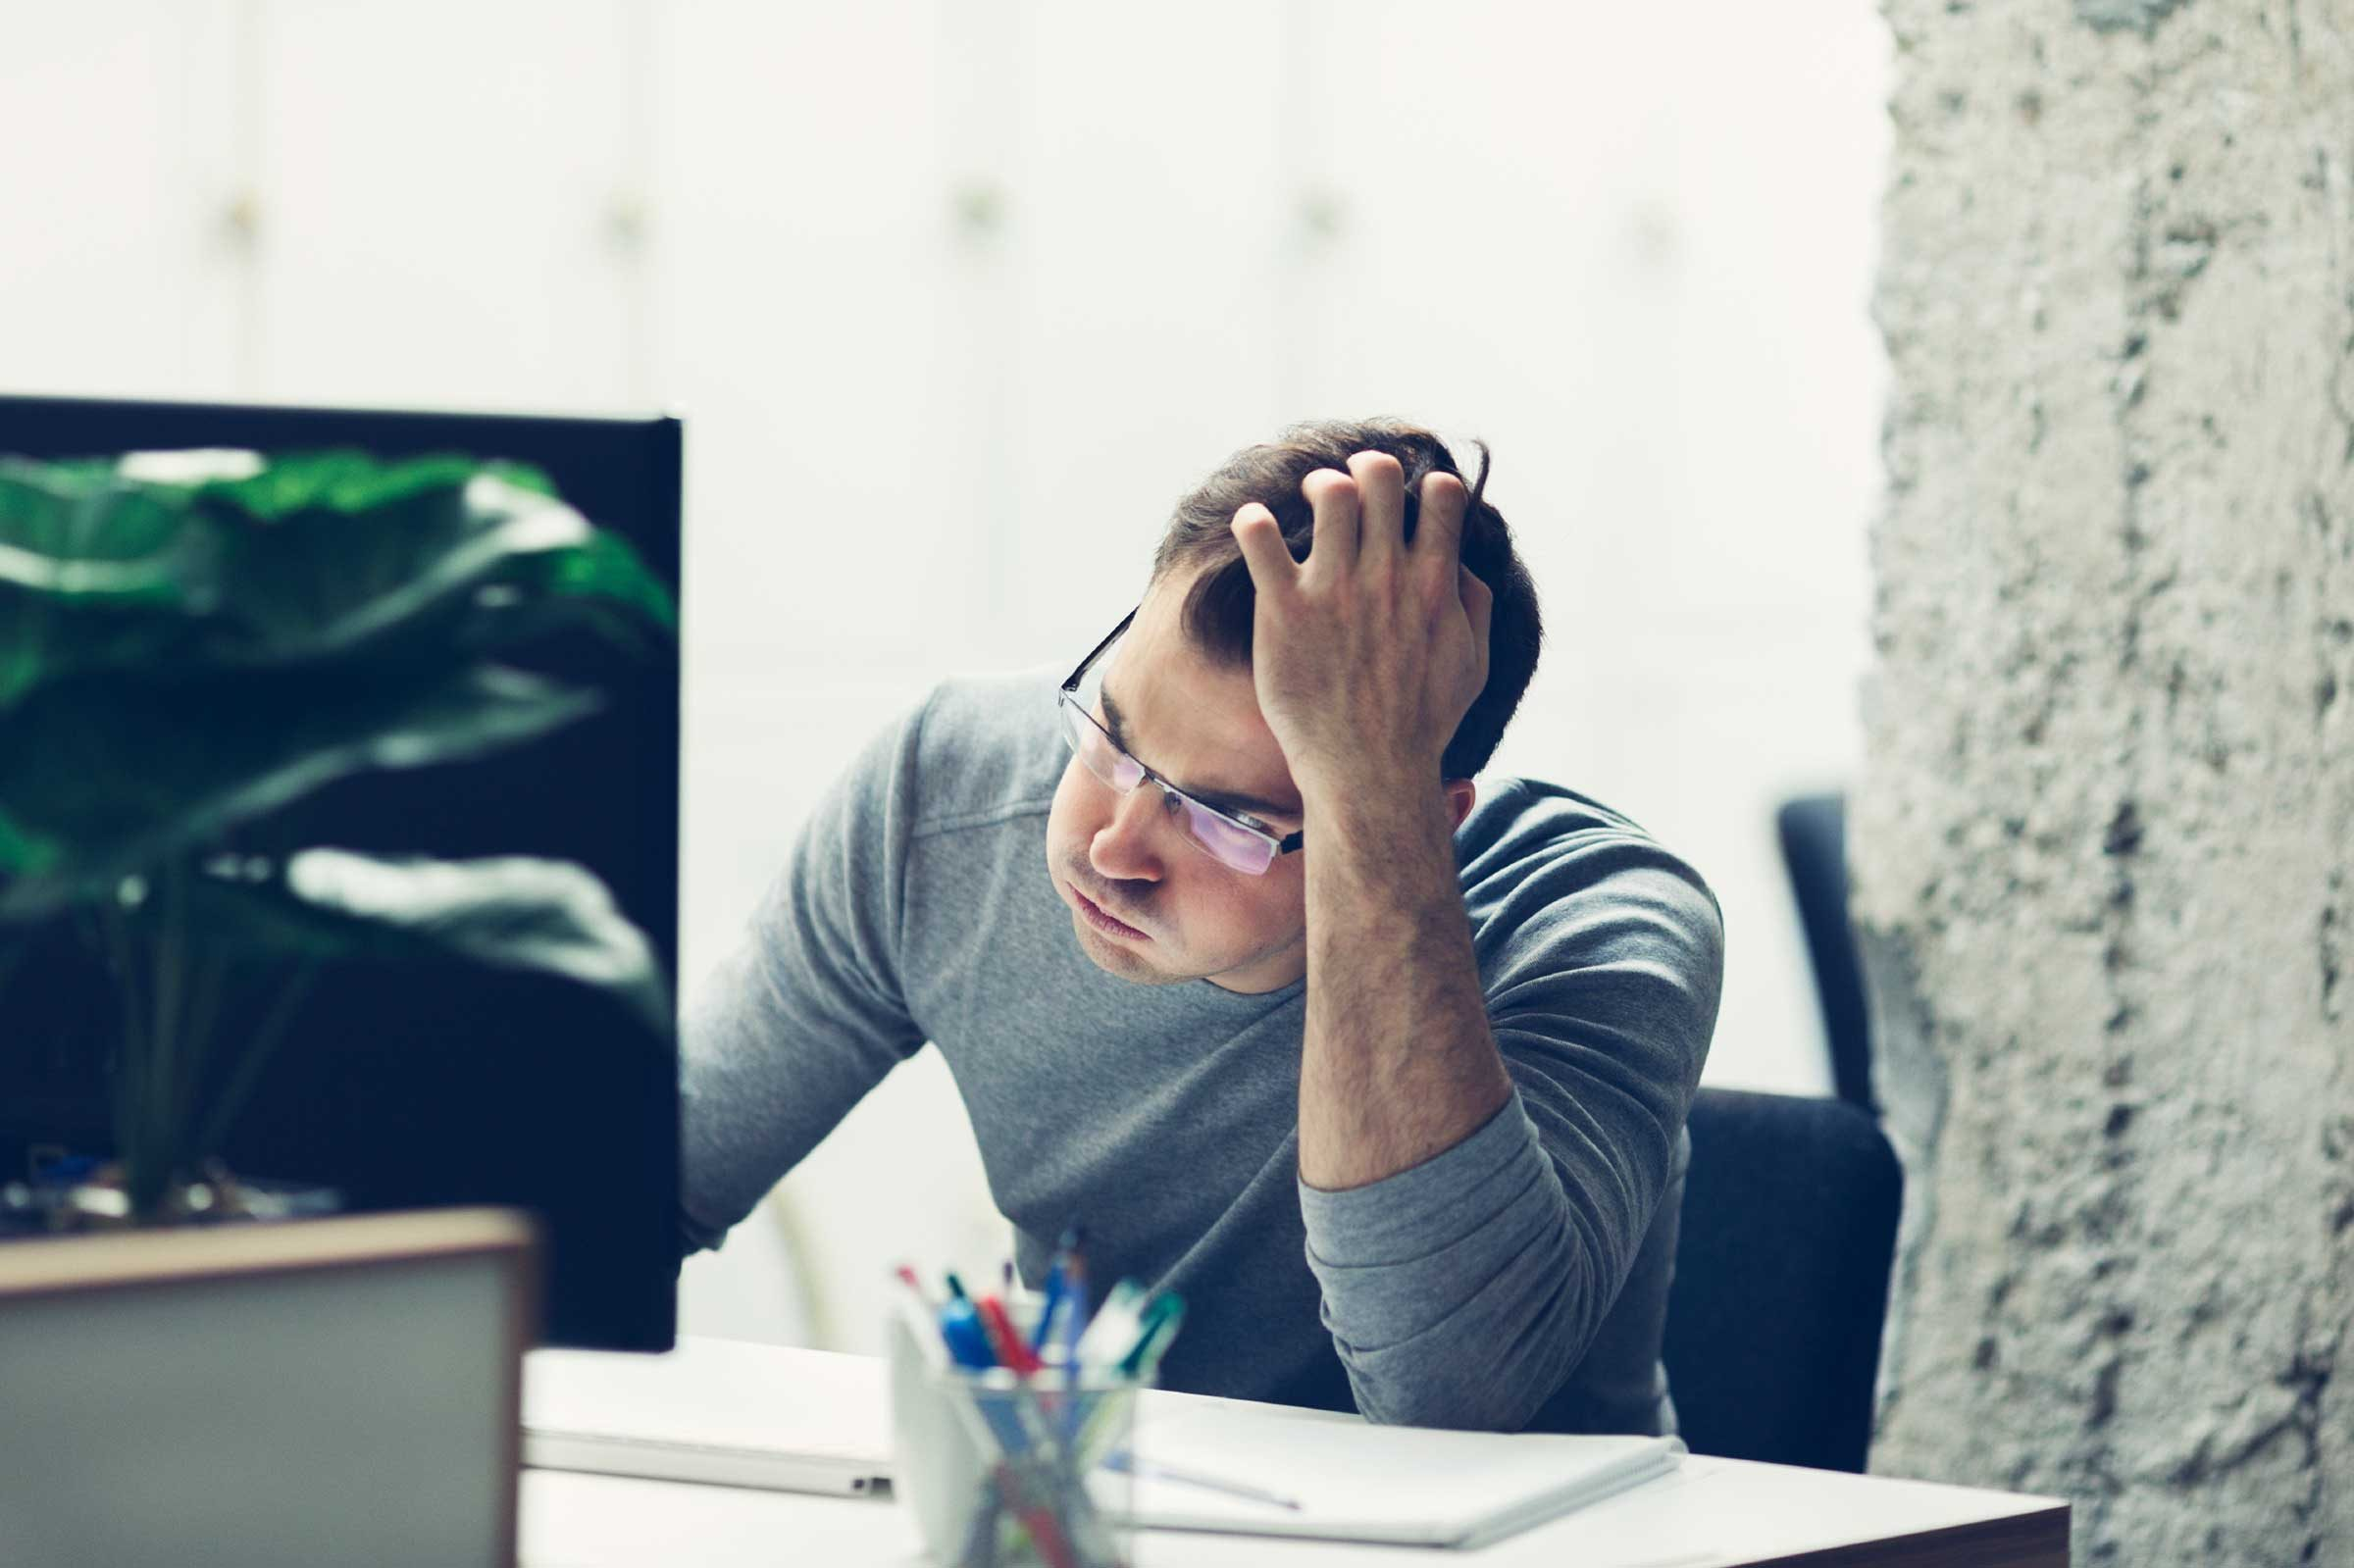 Don't: Tackle an important project at work